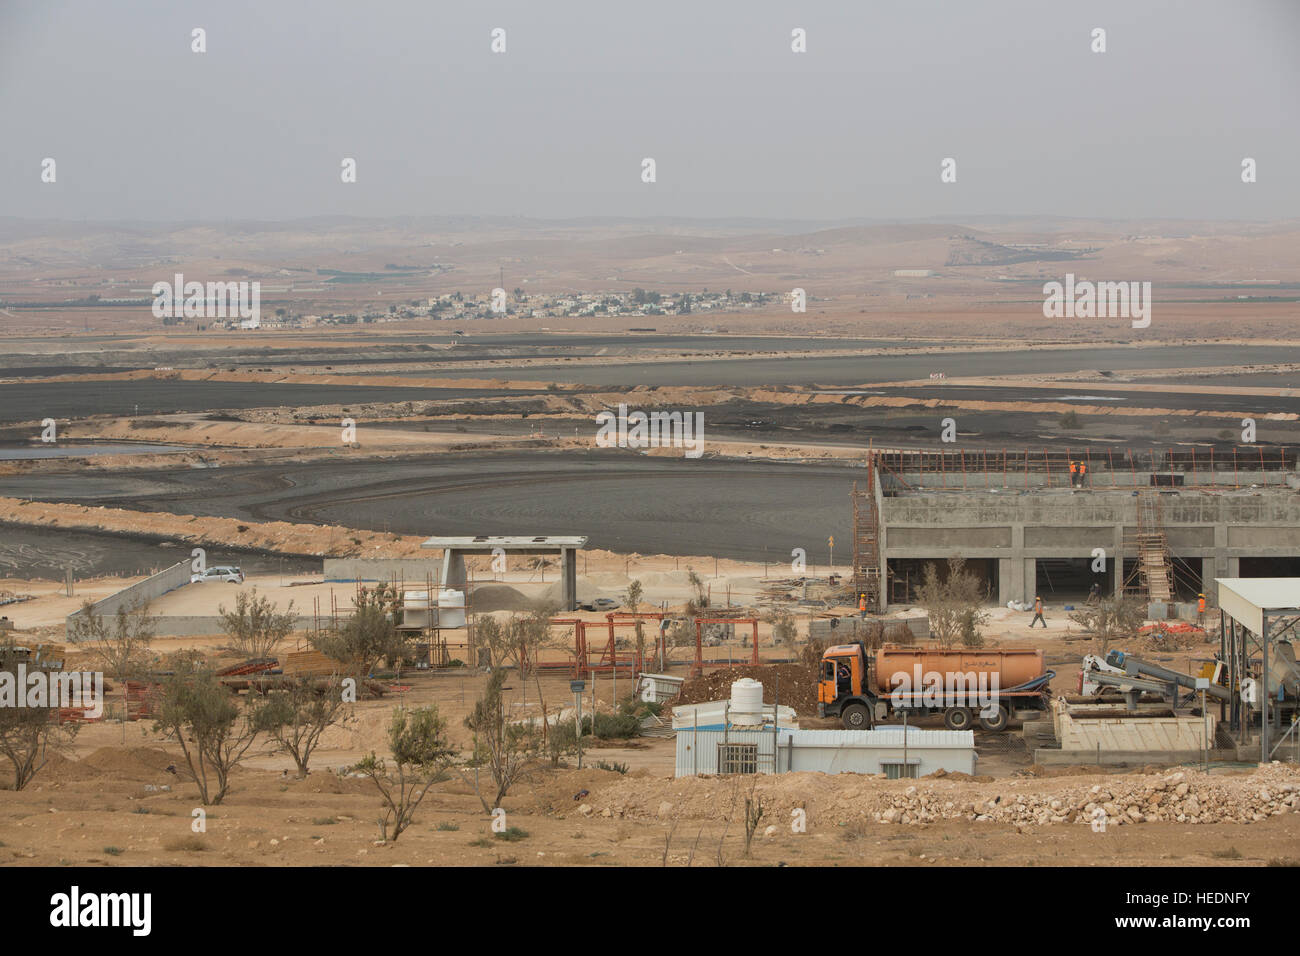 As-Samra waste water treatment plant in Zarqa, Jordan. - Stock Image